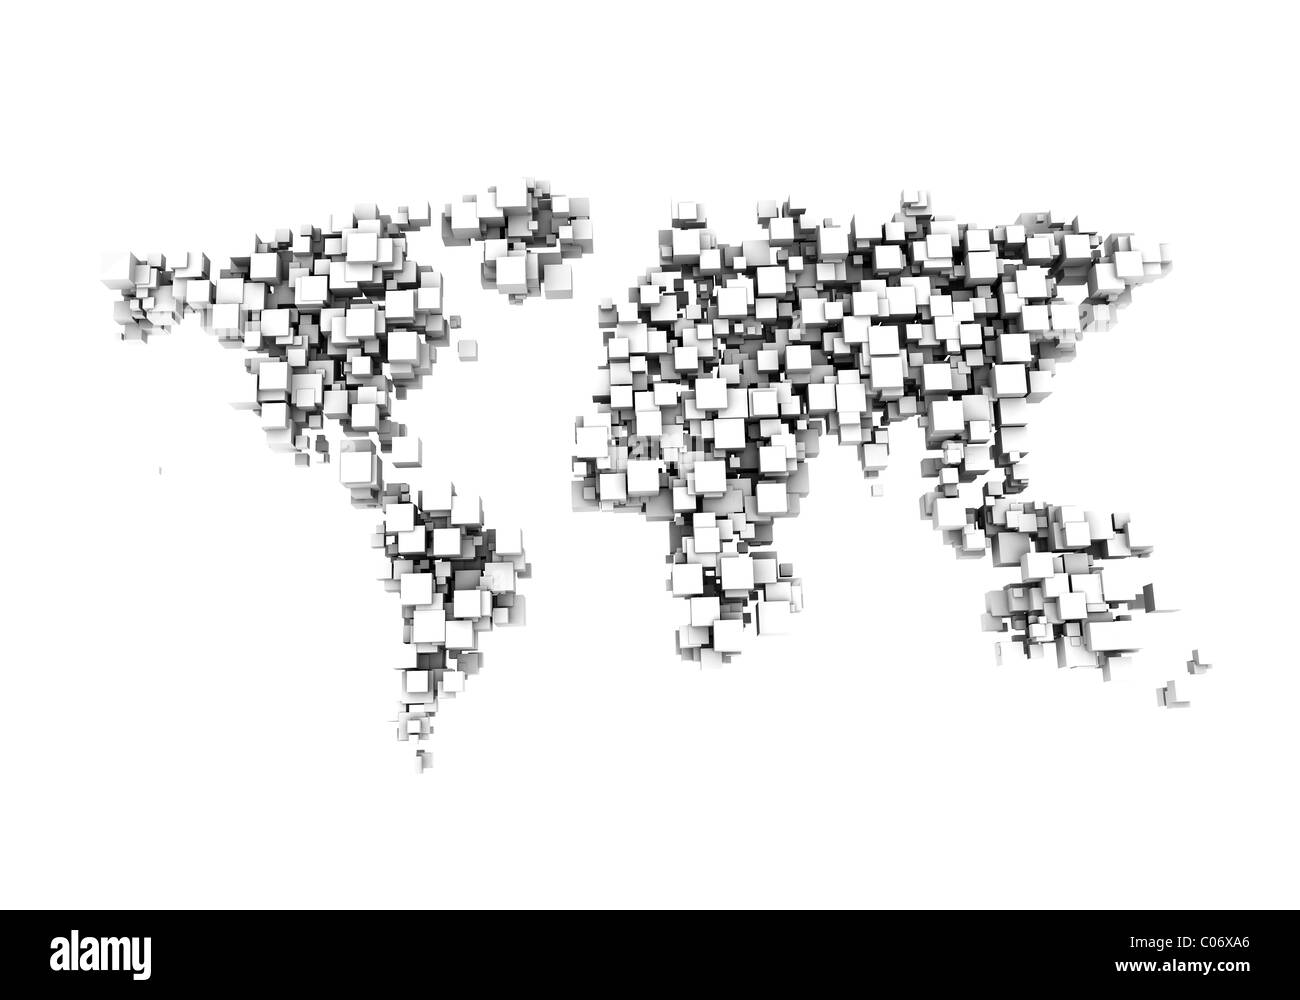 Abstract World Map Made Of Cubes Stock Photo 34573118 Alamy